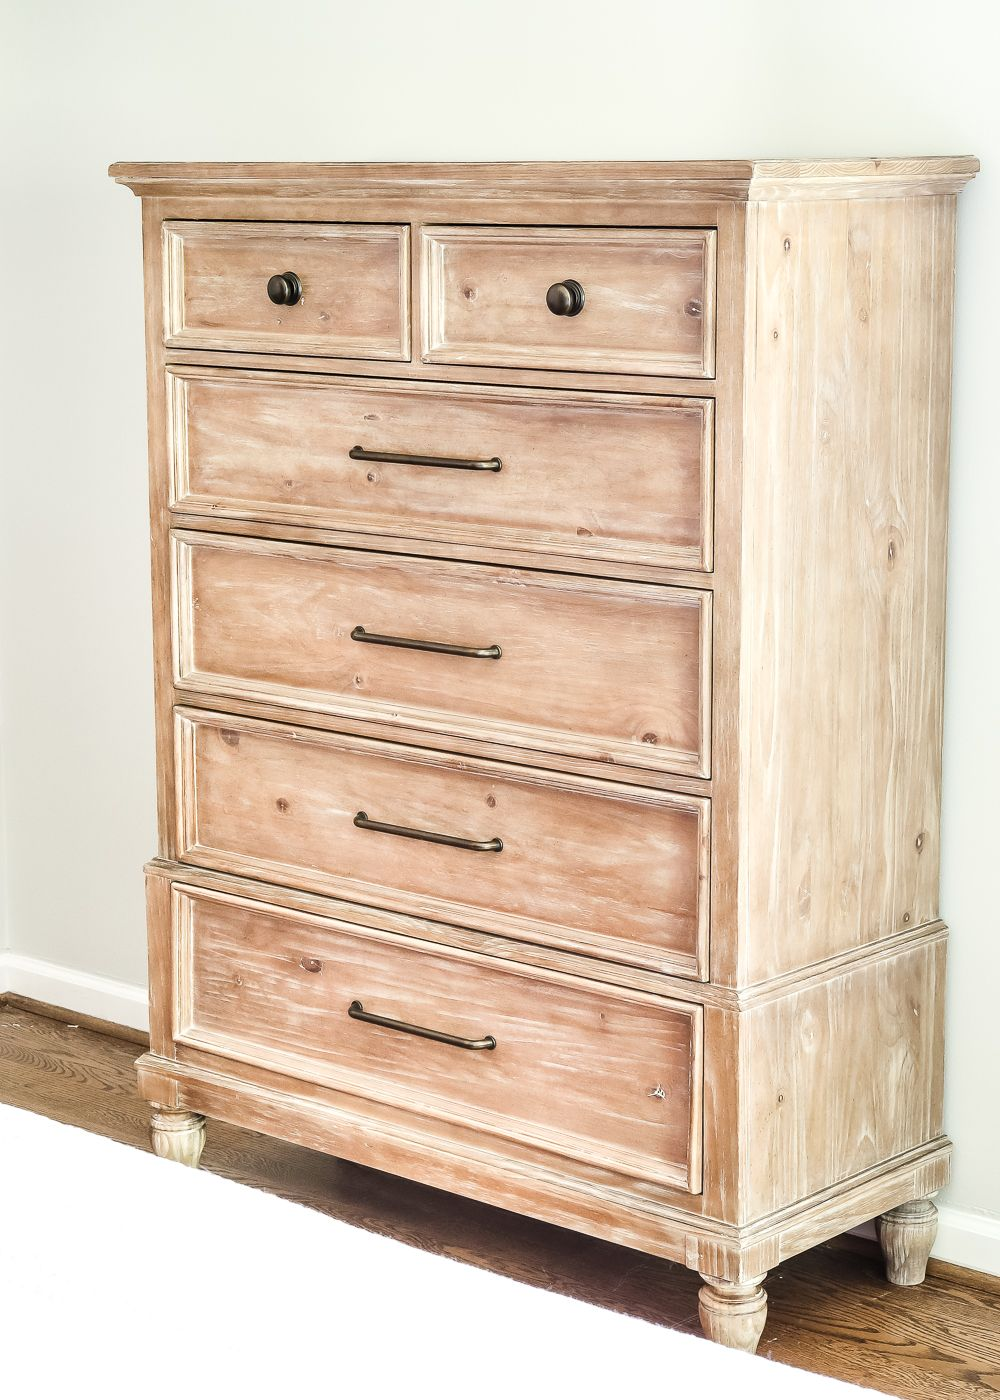 Master Bedroom Update Pickled Pine Furniture Pine Furniture Oak Bedroom Furniture Pine Bedroom Furniture